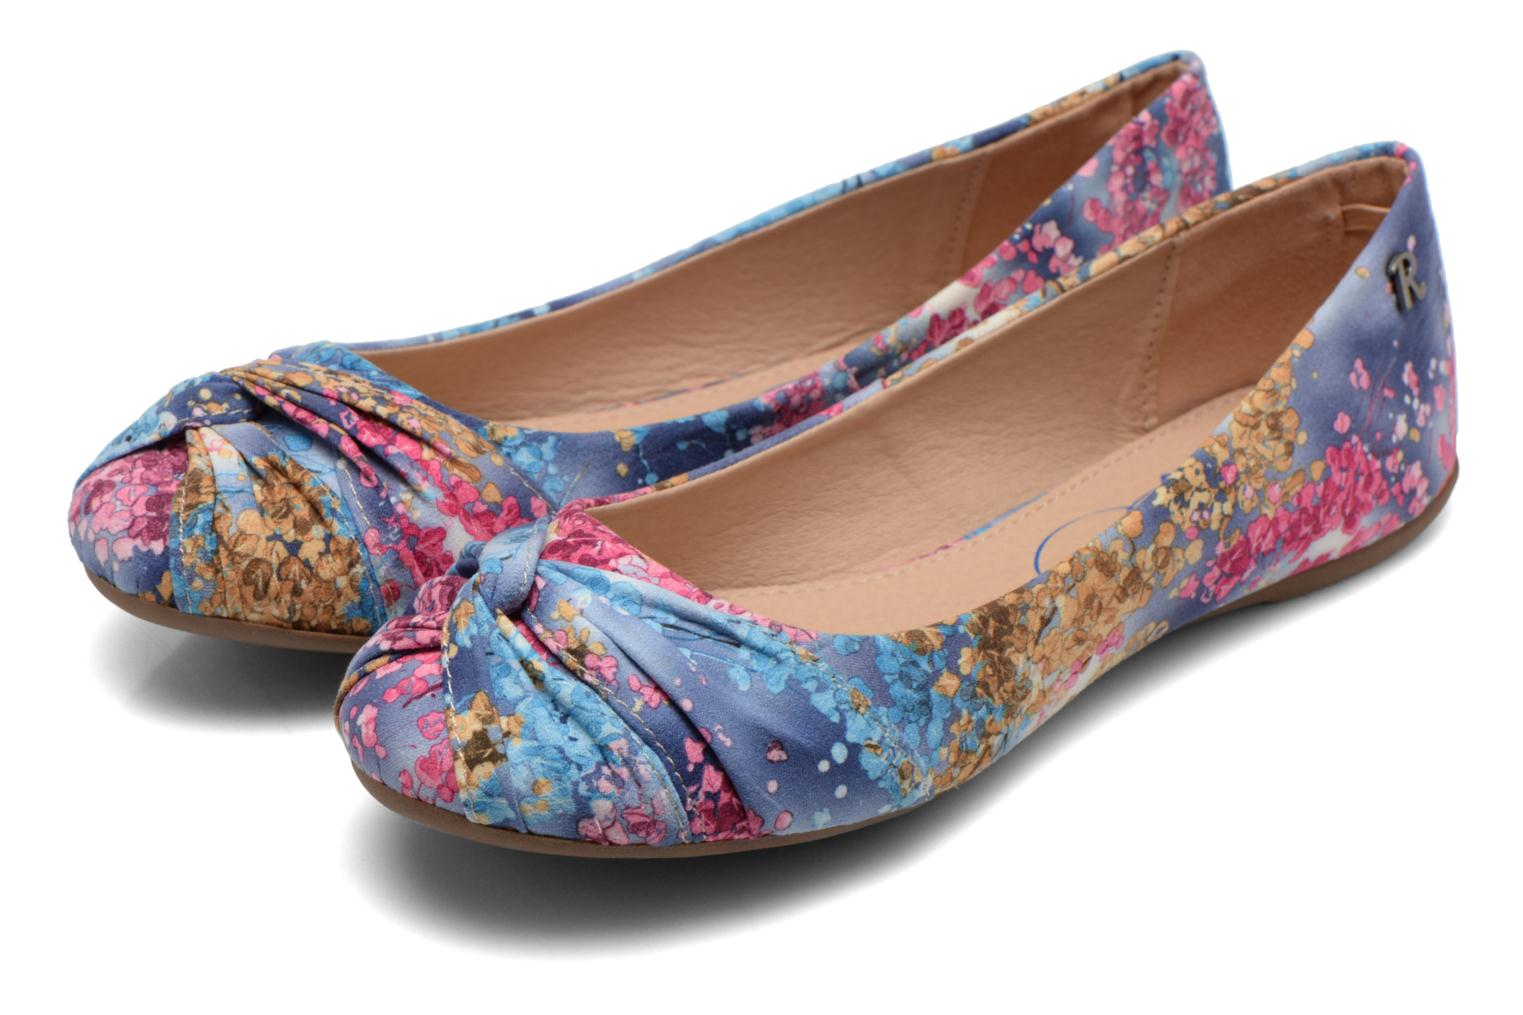 Ballerine Refresh Island 61731 Multicolore immagine 3/4